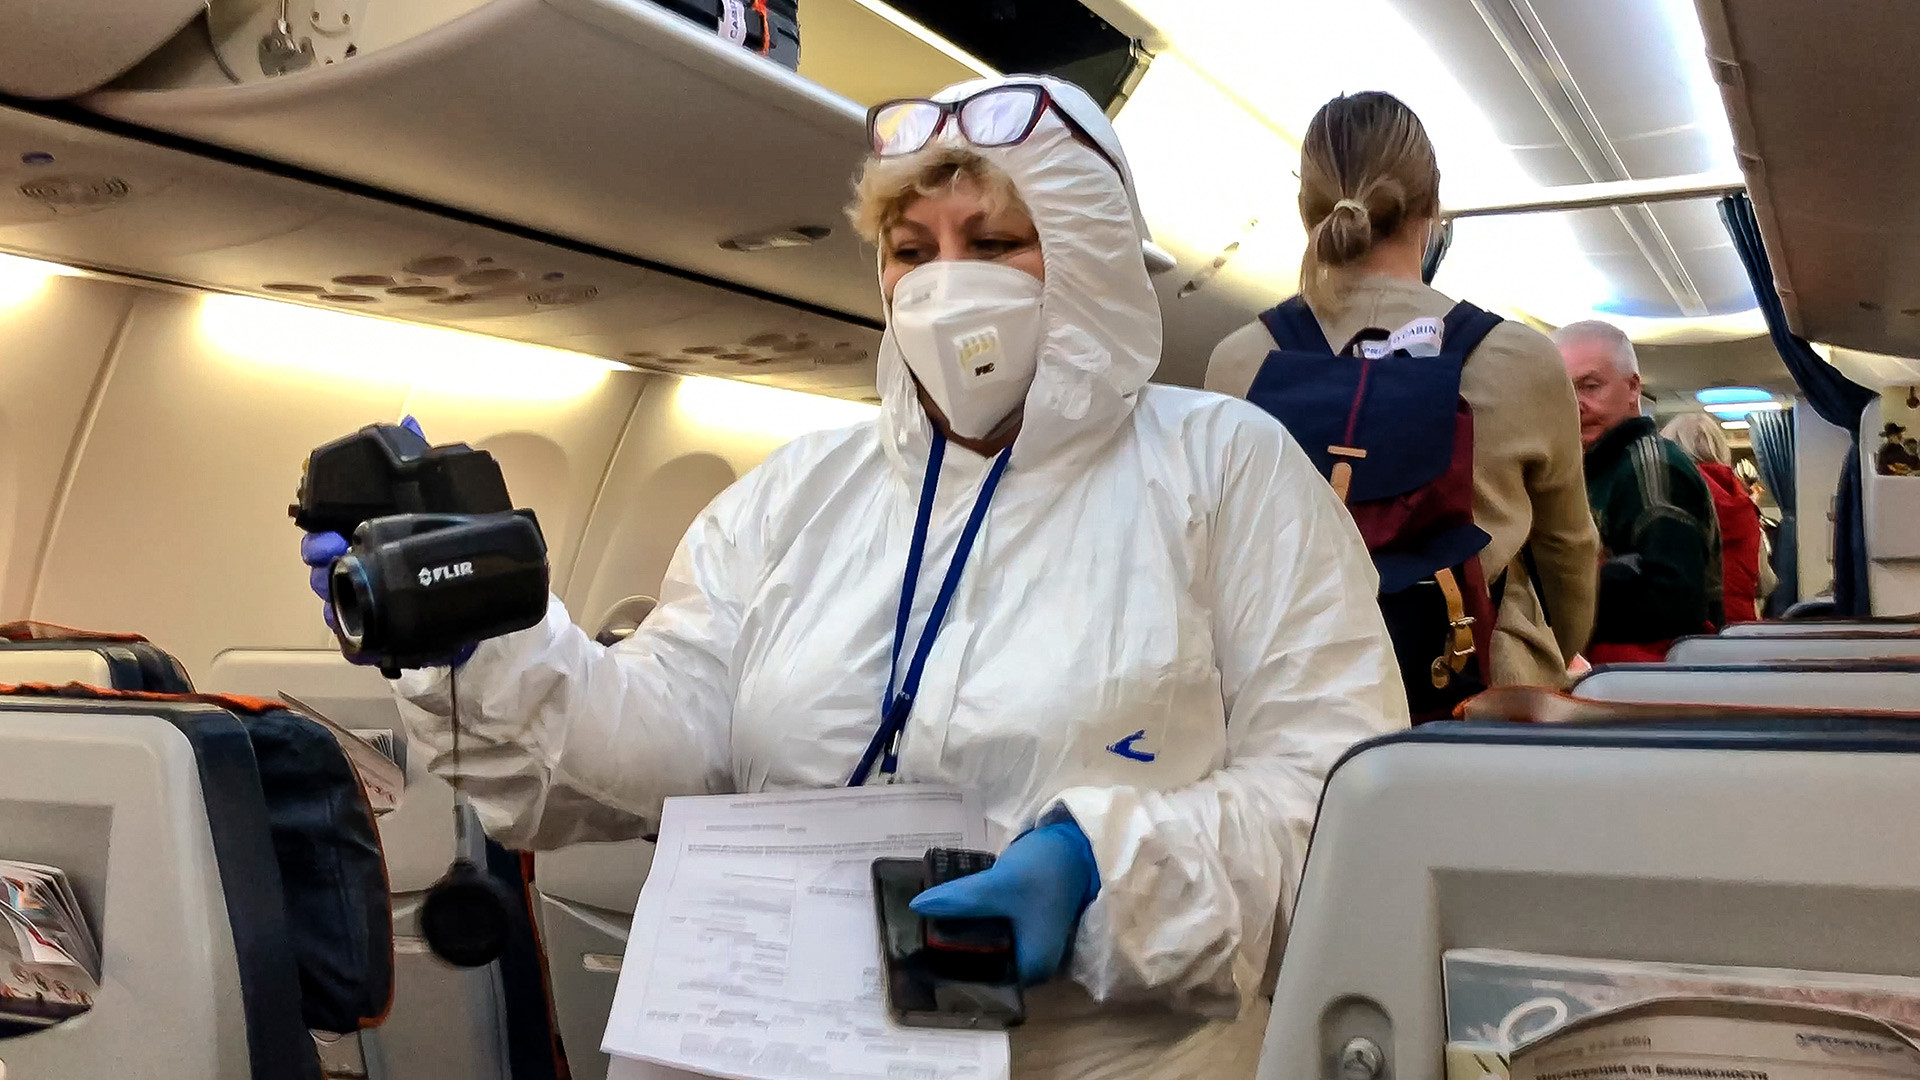 A Russian medical expert checks passengers arriving from Italy inside the plane at Sheremetyevo airport, Moscow, March 8, 2020.